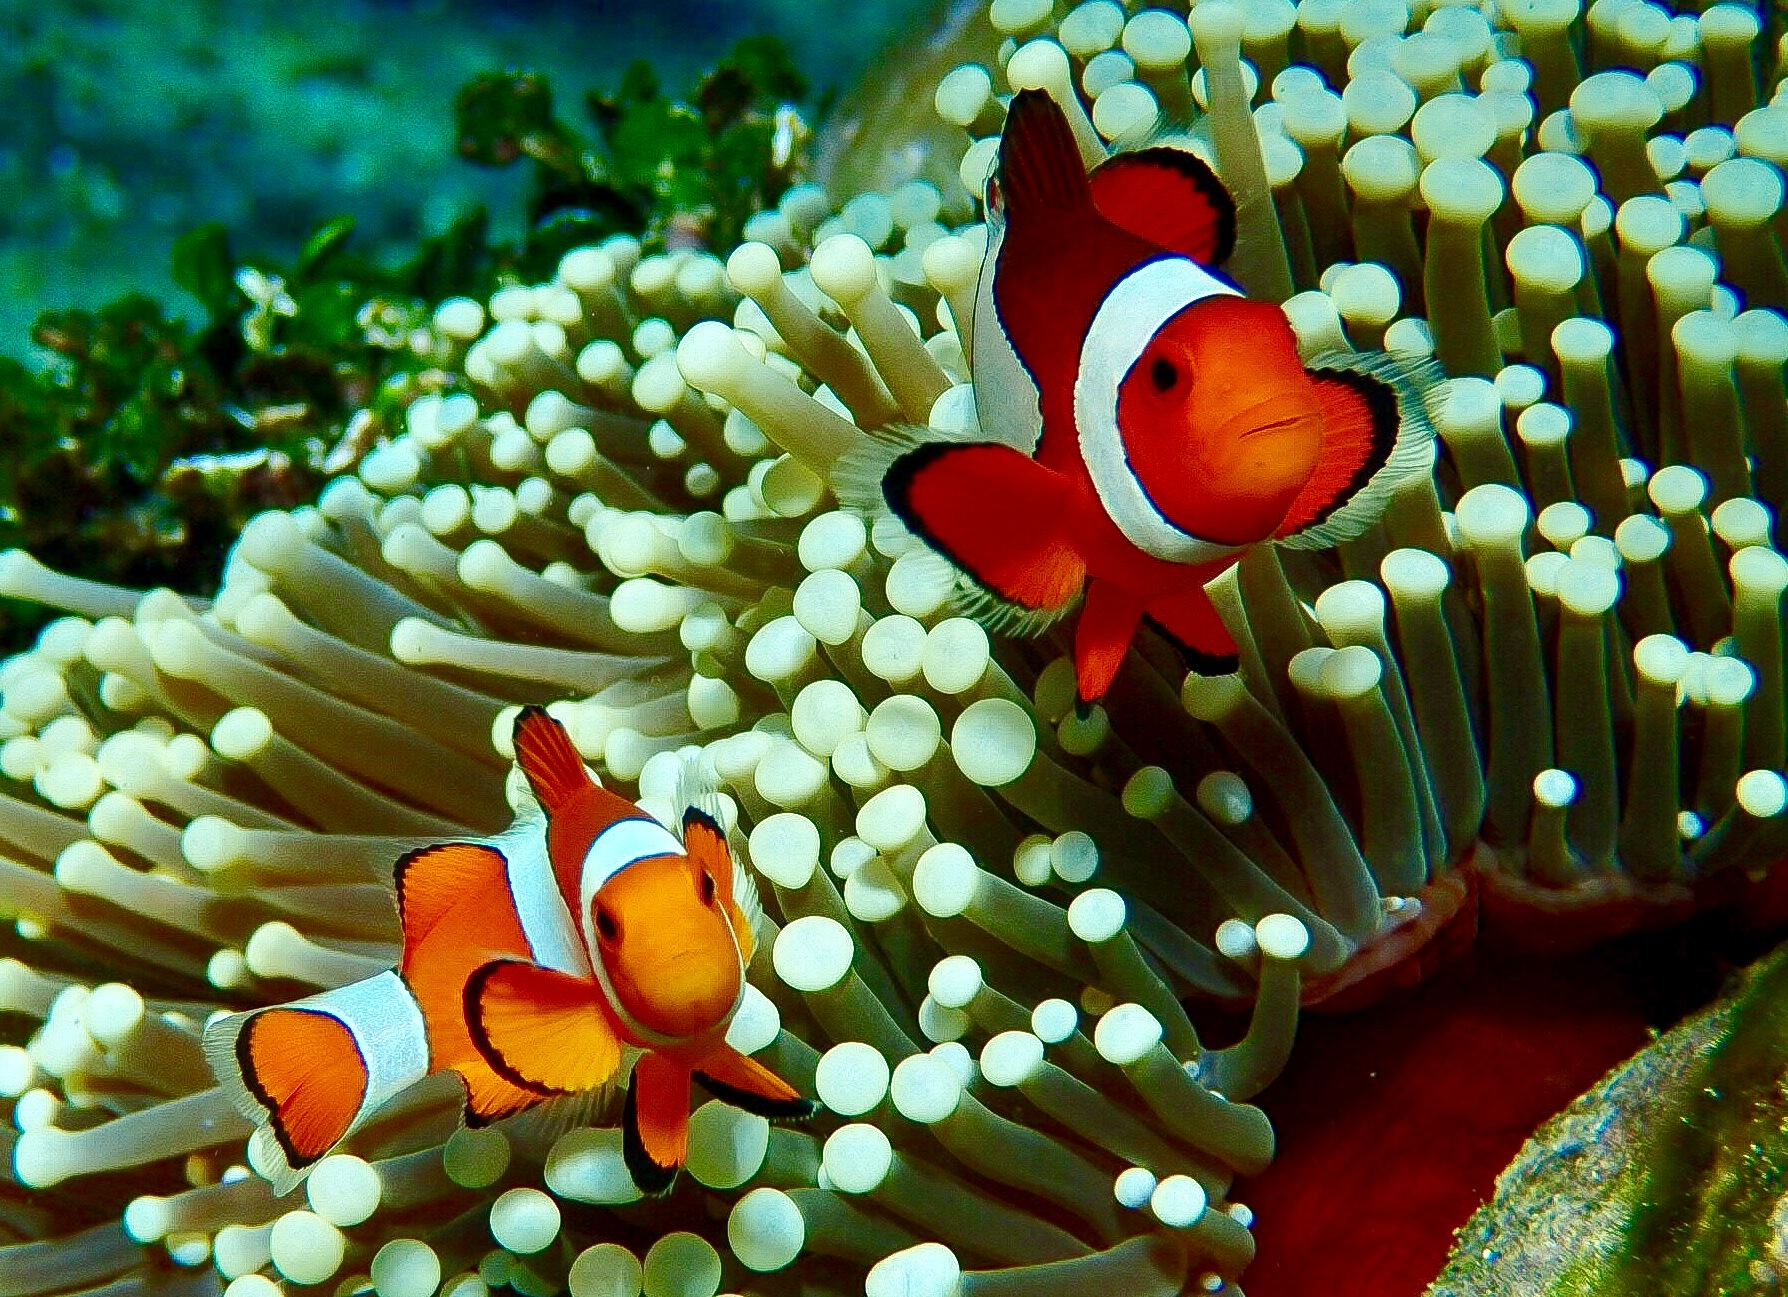 Nemos off the coast of Bali, Indonesia by Mick Wells